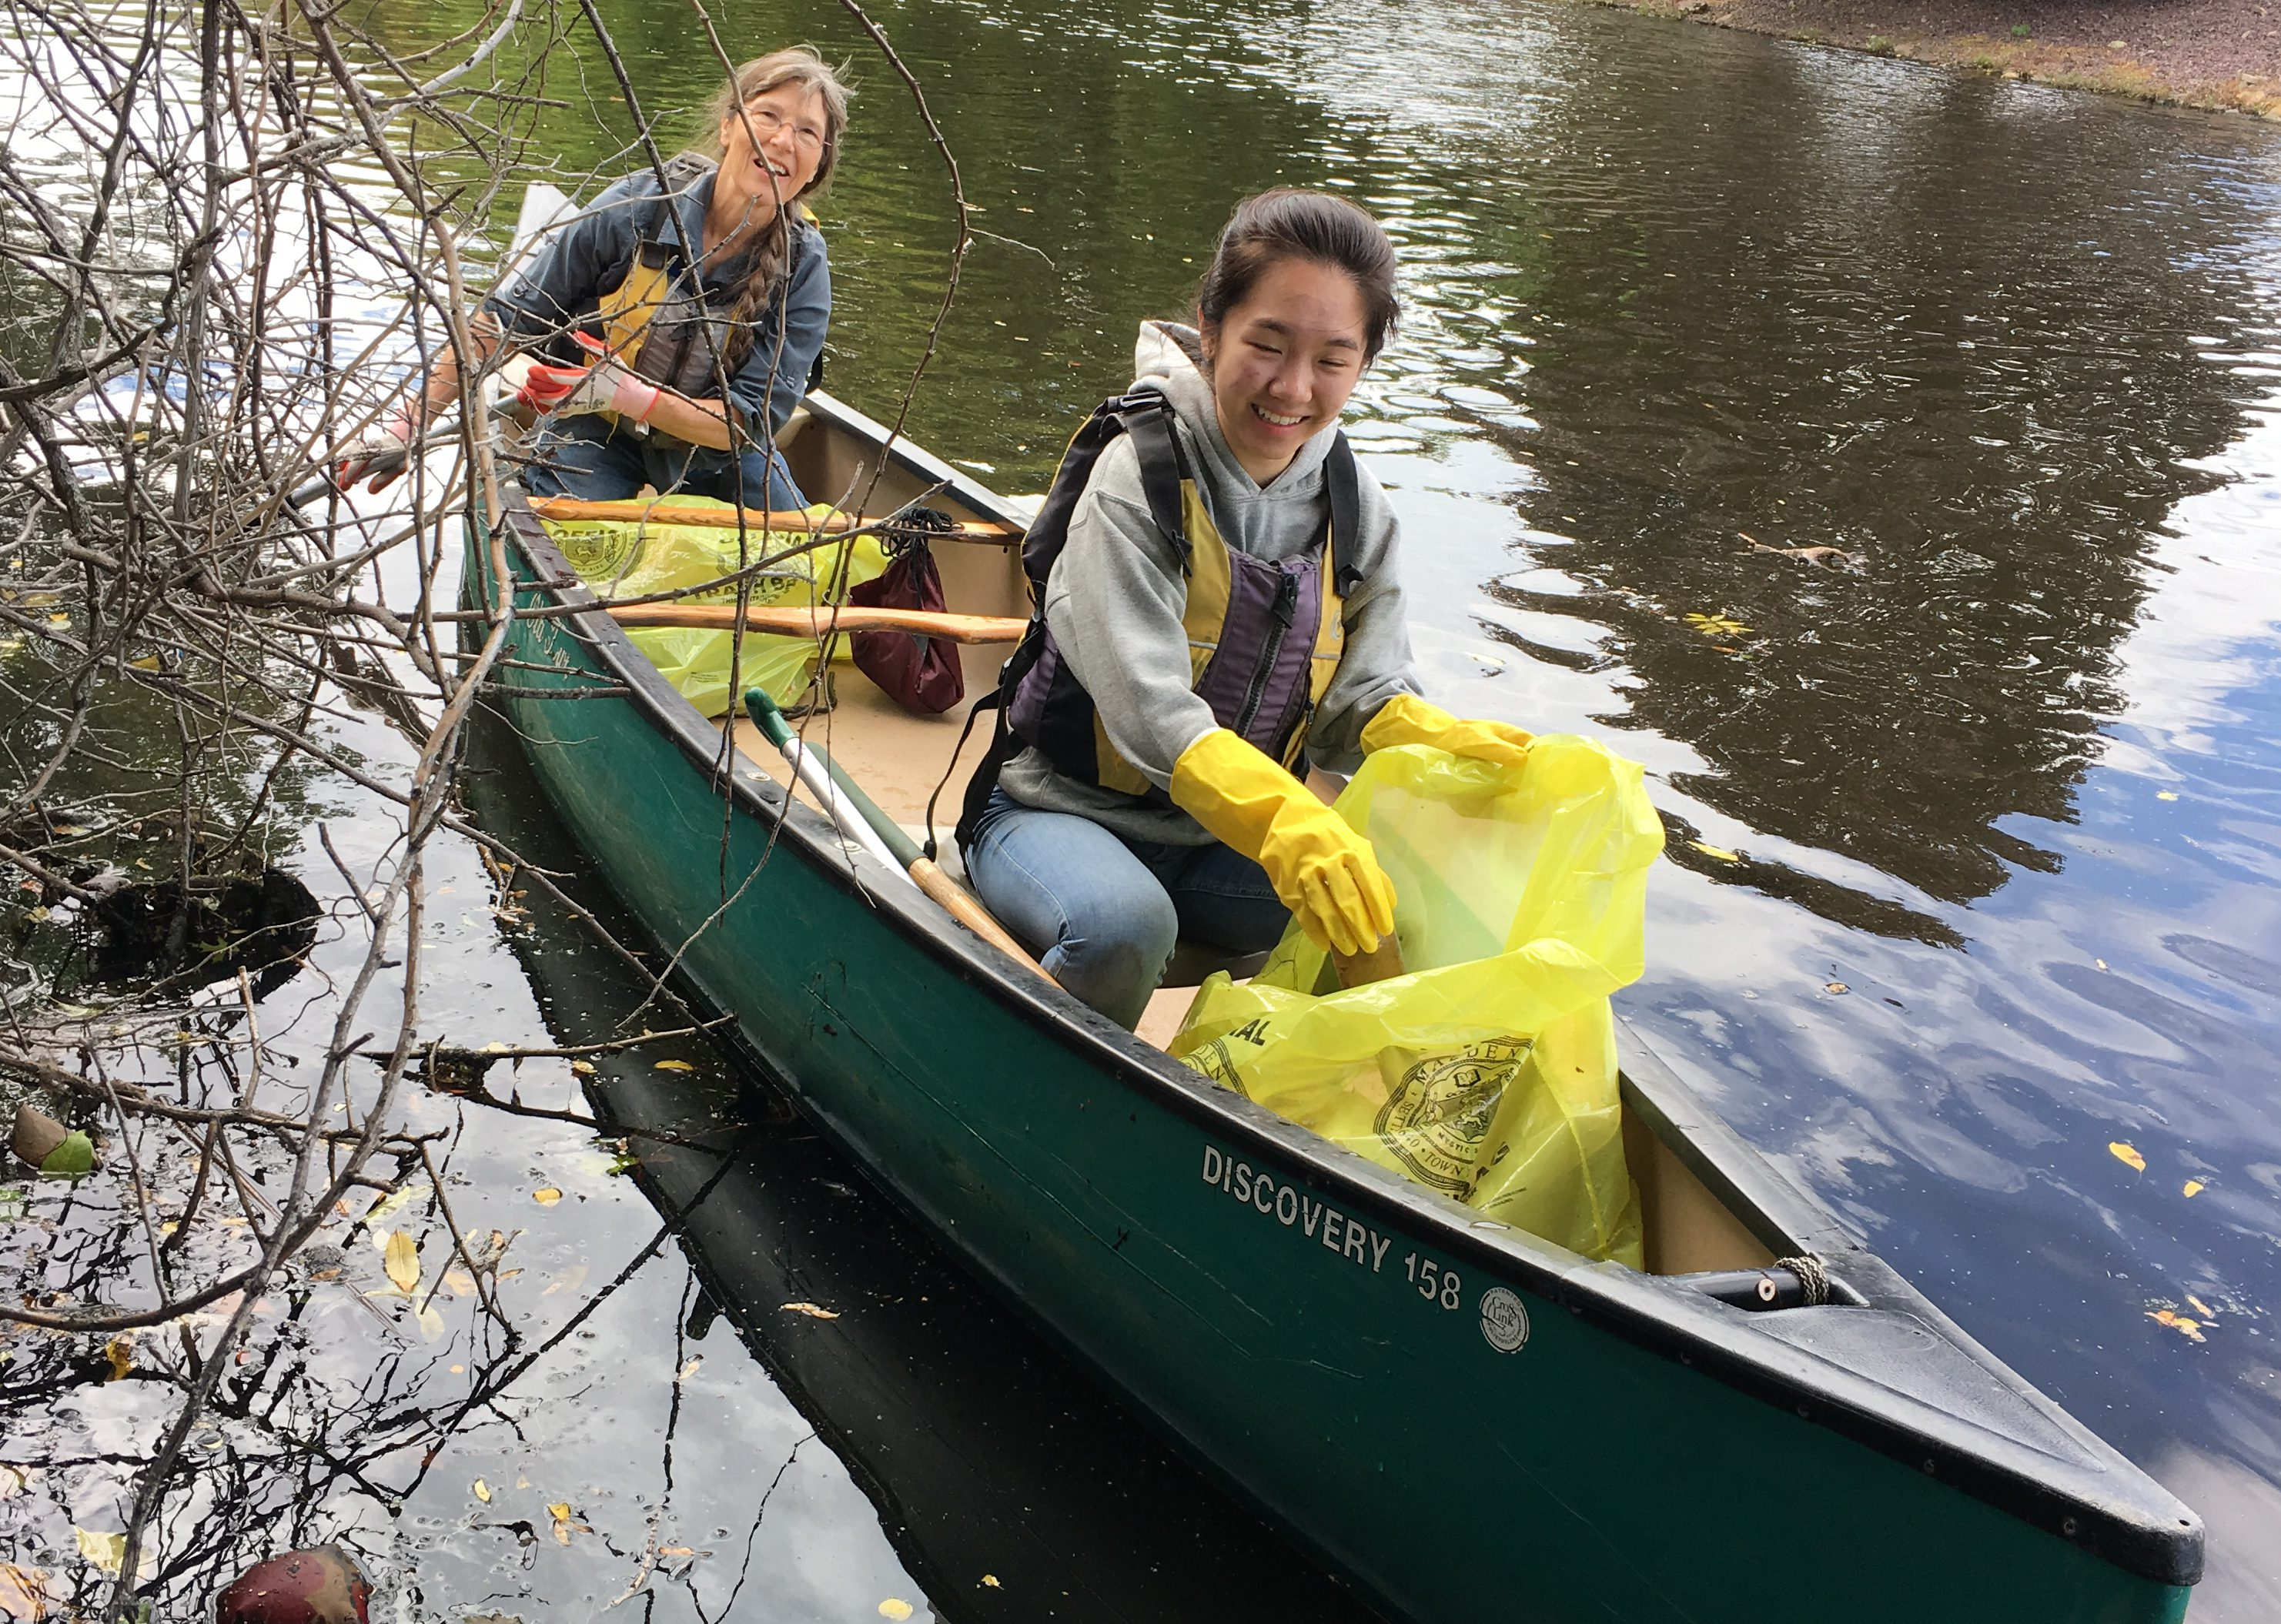 Cruising and Cleaning the Malden River